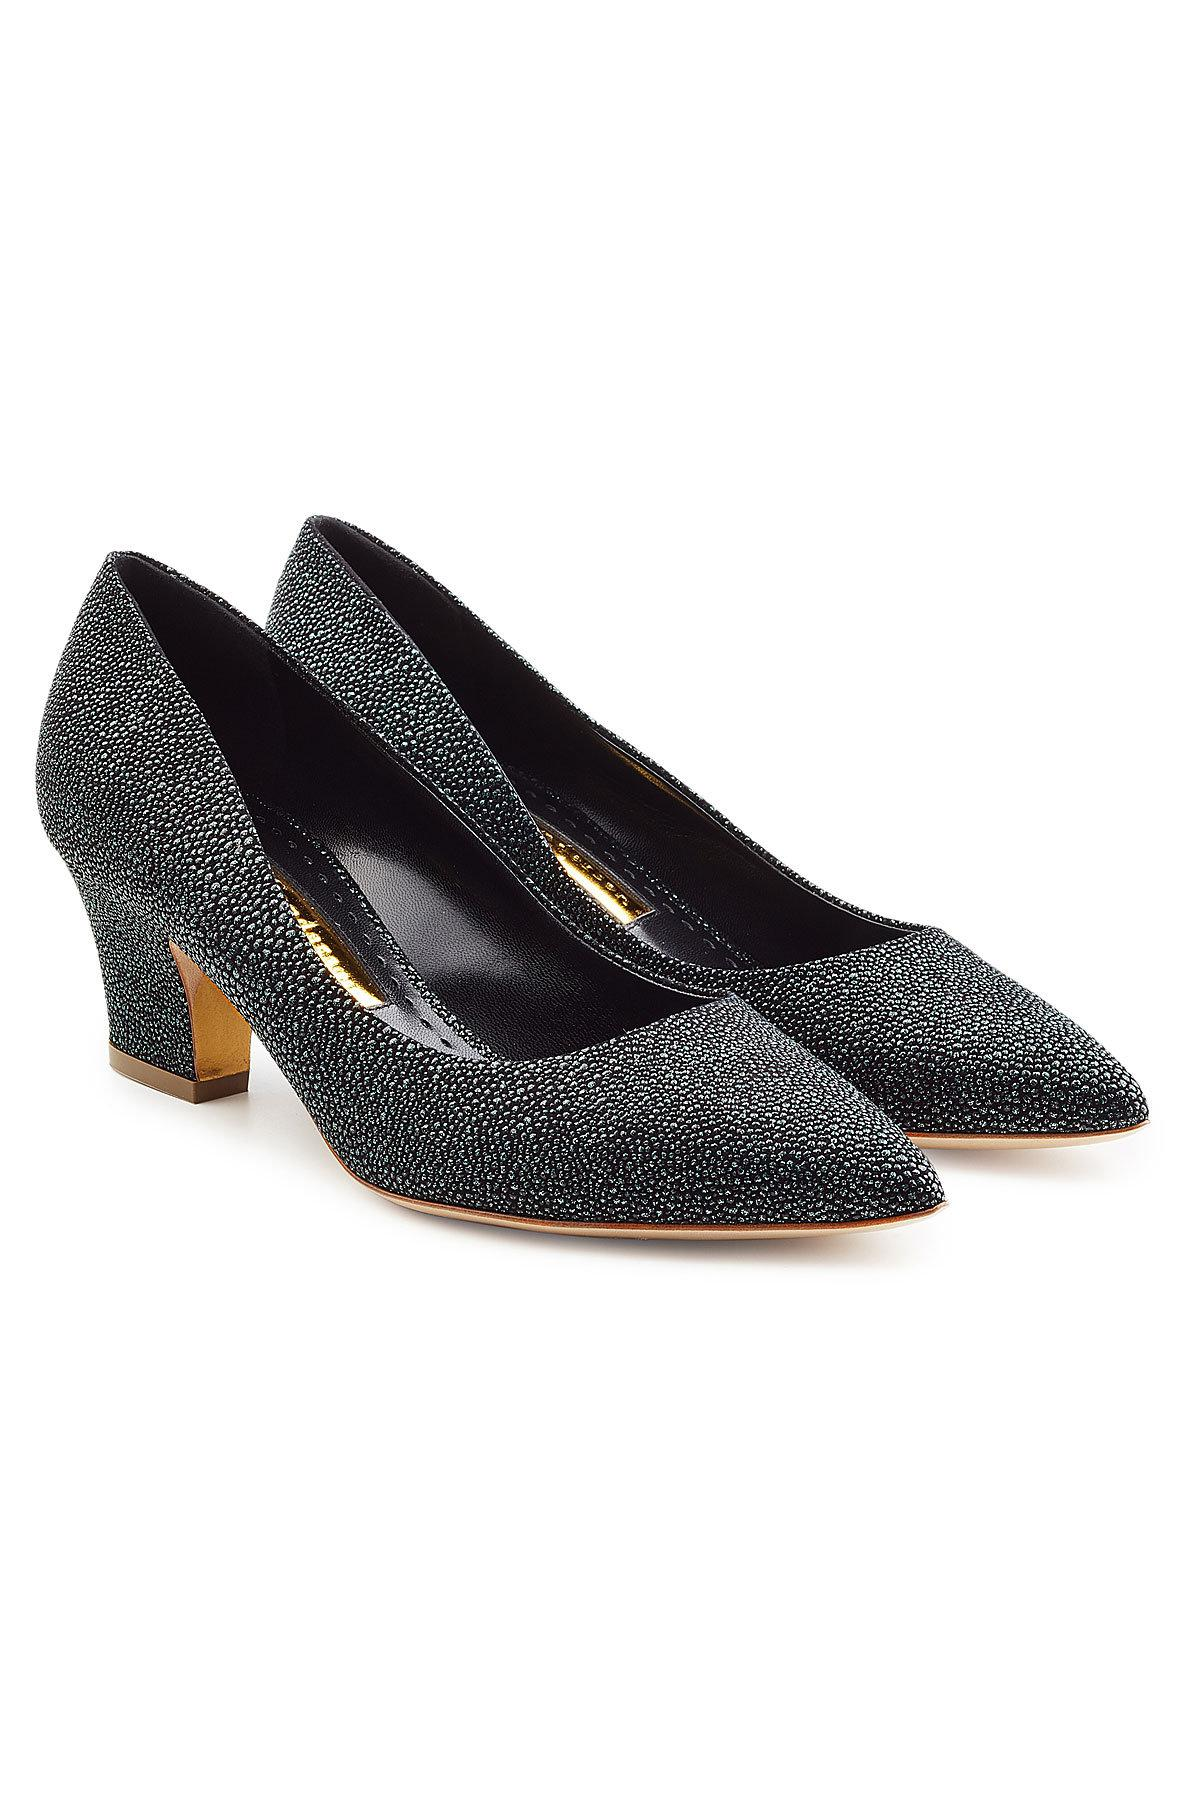 Rupert Sanderson Textured Leather Pumps Clearance Extremely Sale Limited Edition Pay With Paypal Online dalif